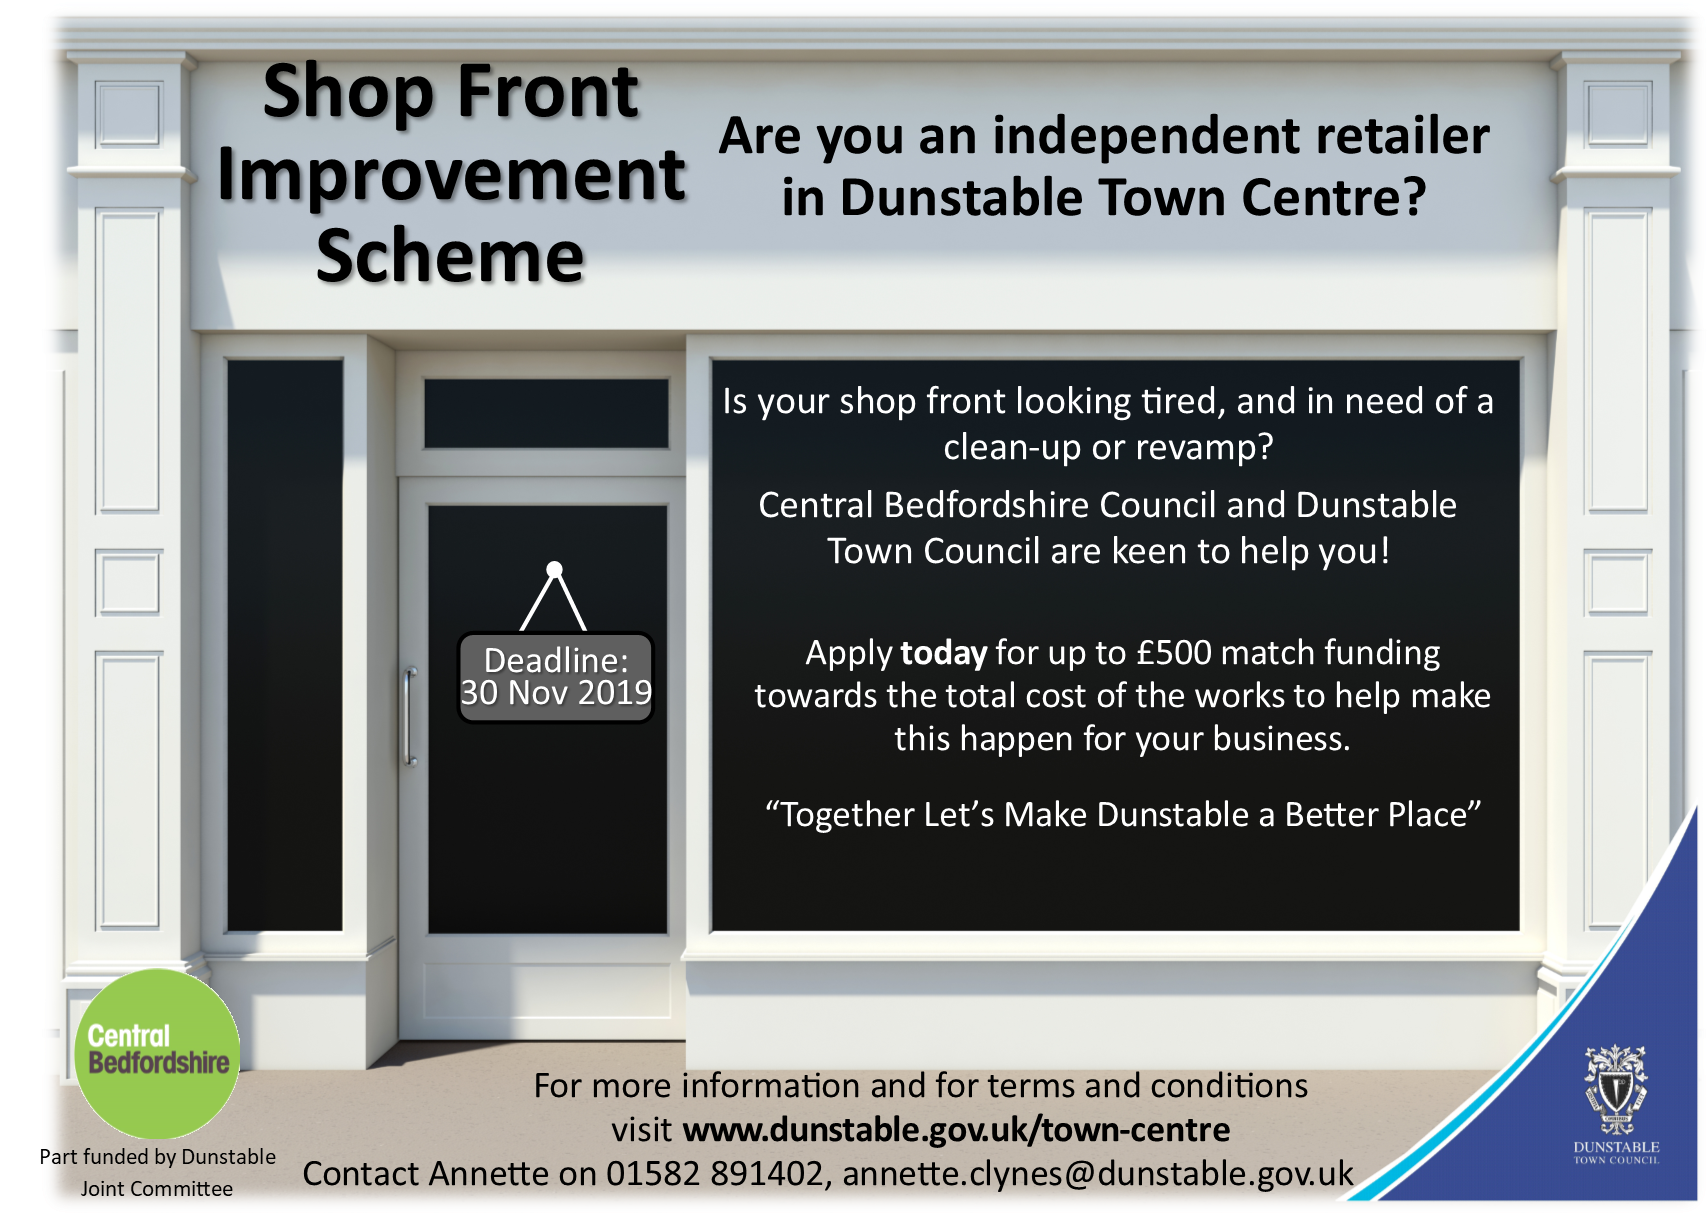 Dunstable Shop Front Improvement Scheme